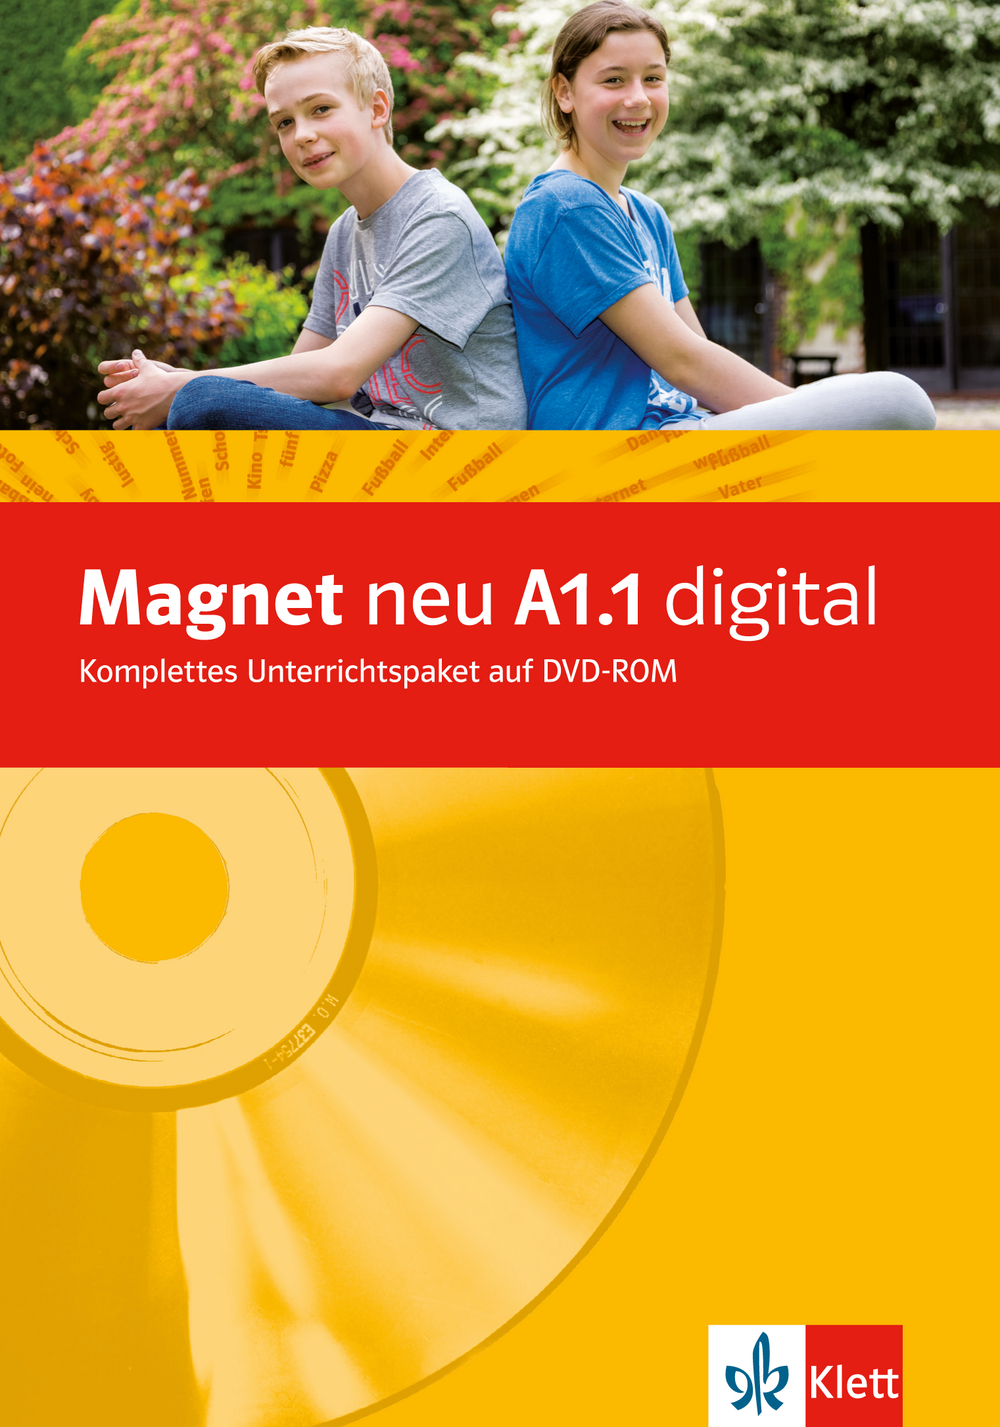 Magnet neu A1.1 digital